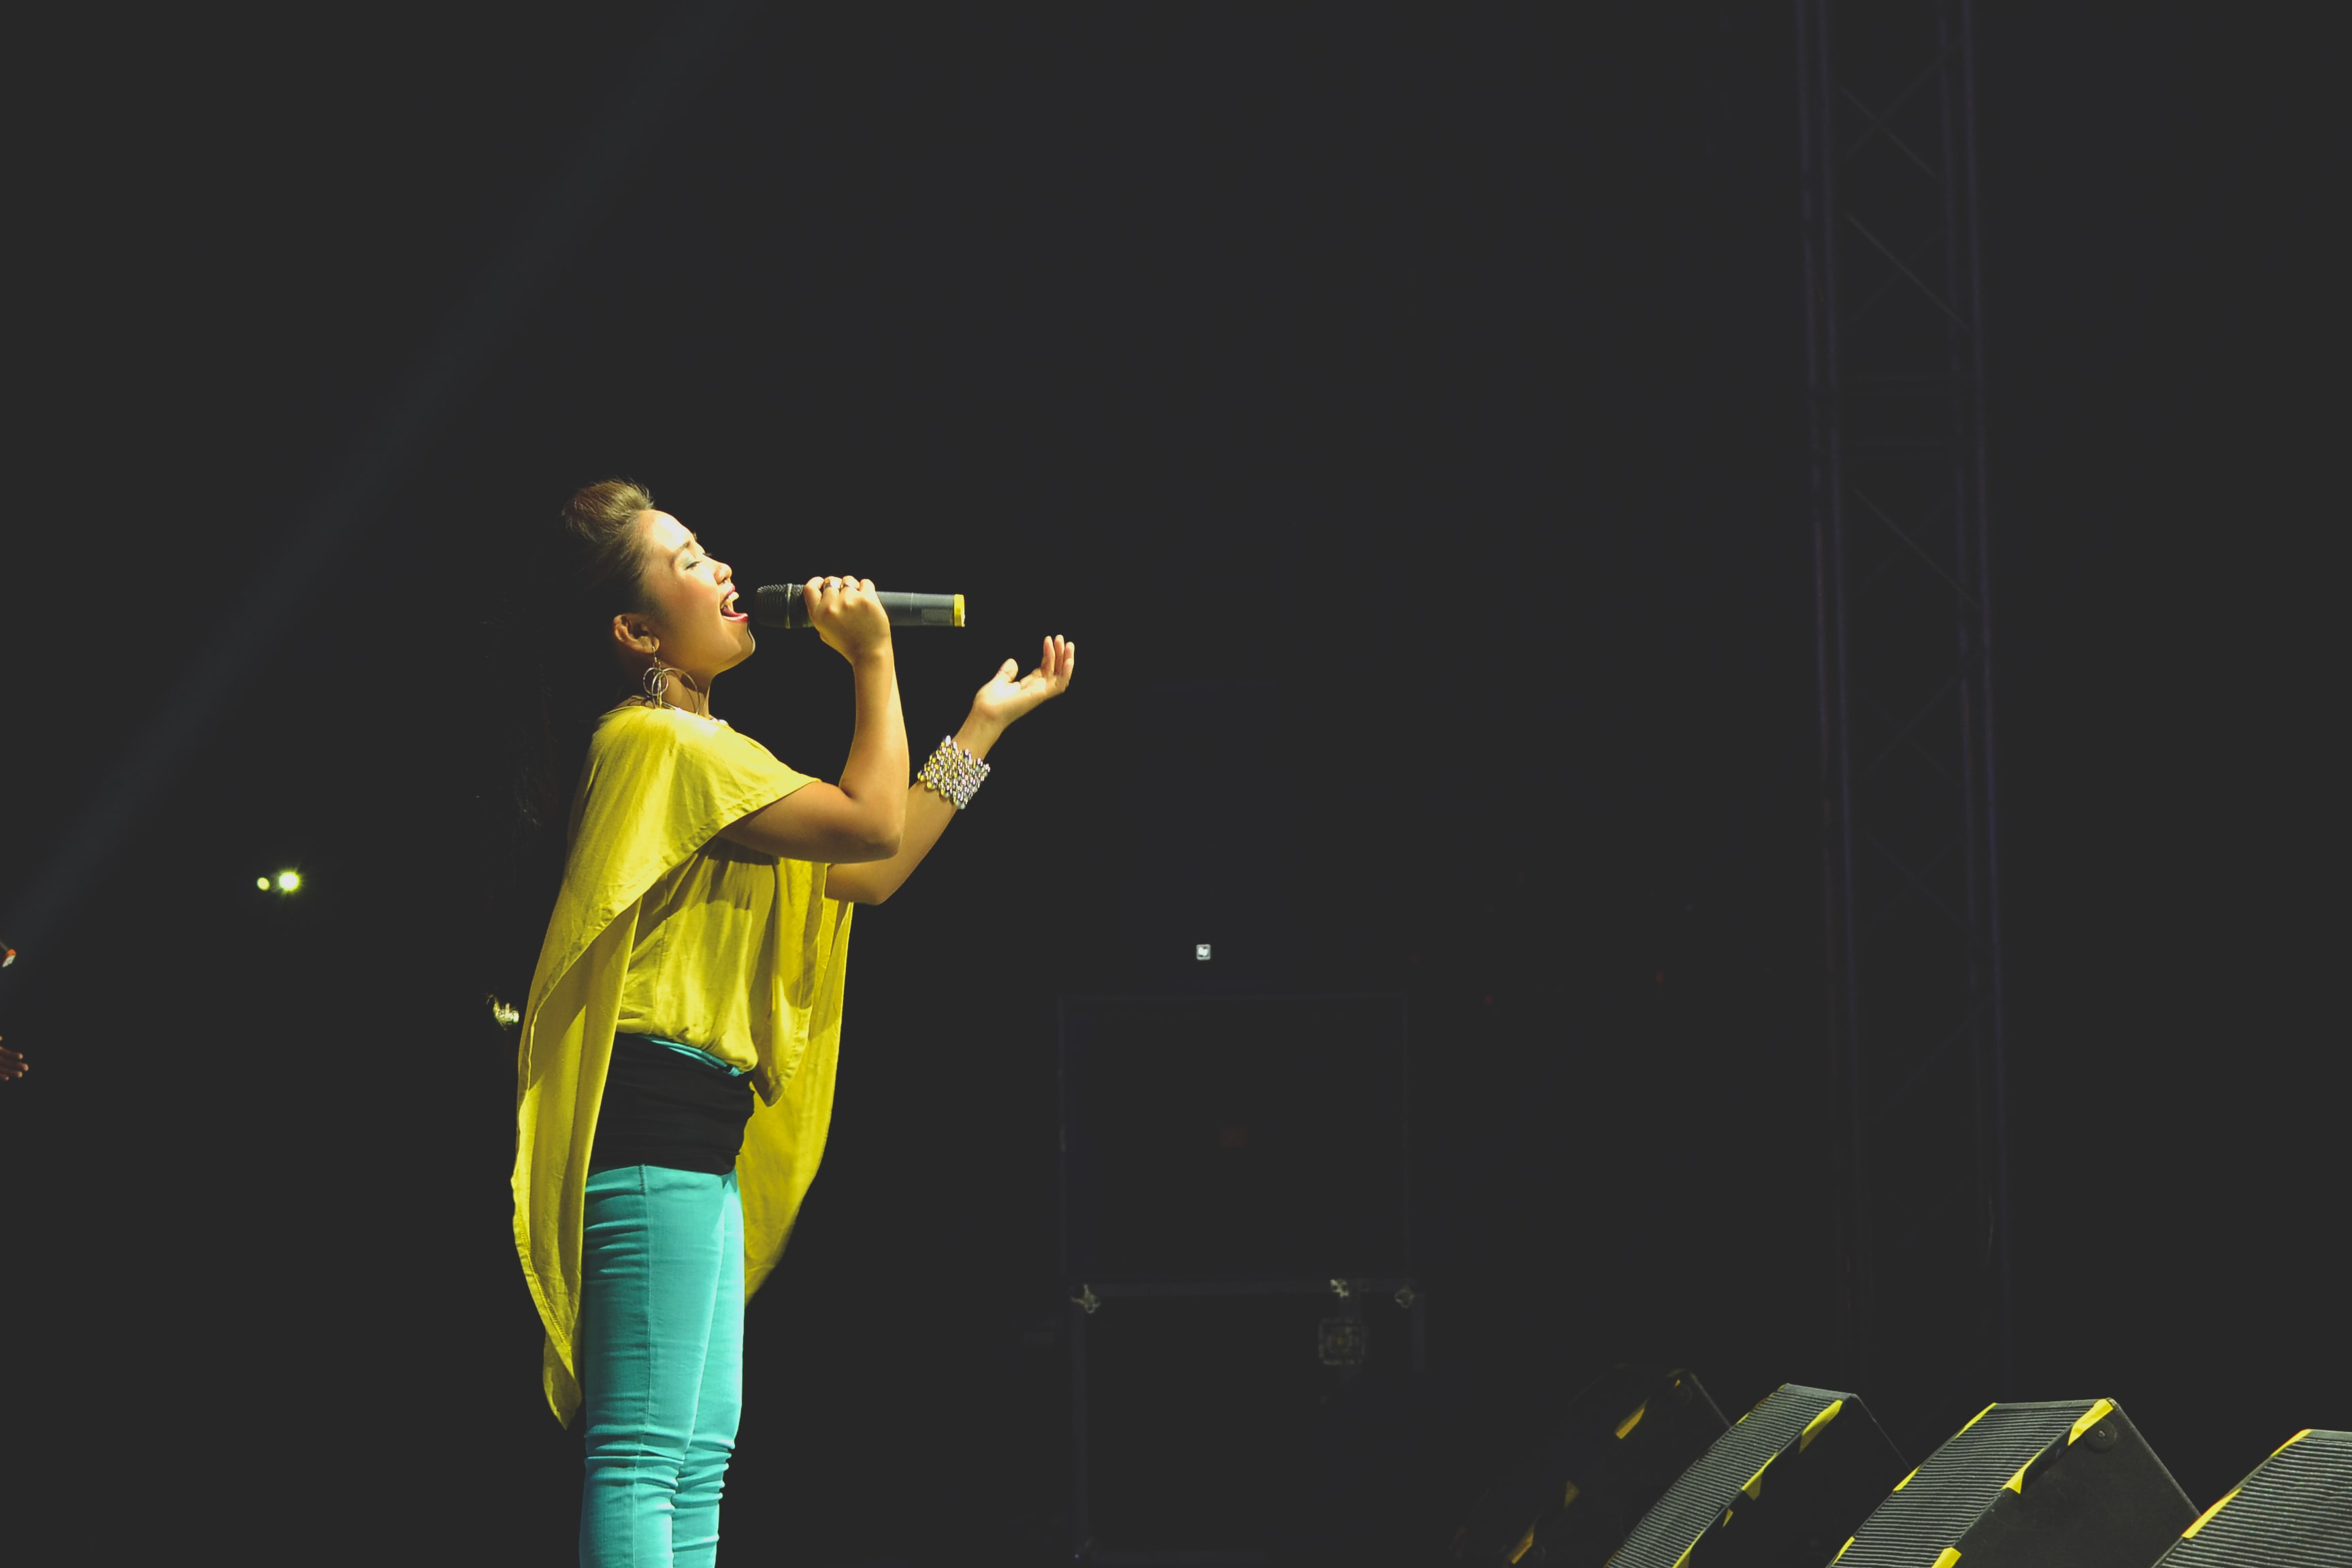 Singer belting onstage into a microphone during a concert